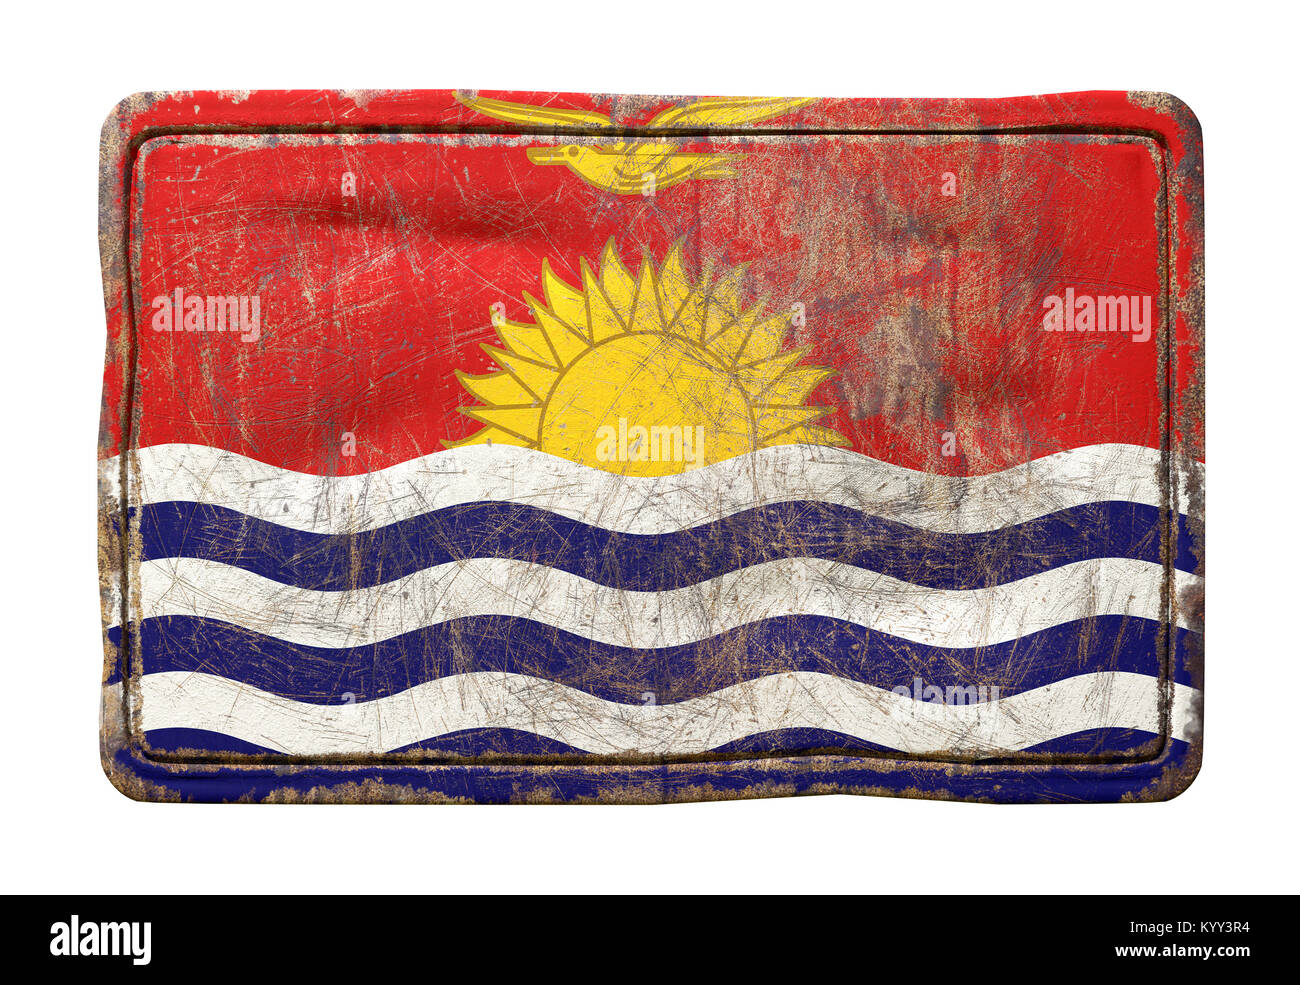 3d rendering of a Kiribati flag over a rusty metallic plate. Isolated on white background. - Stock Image